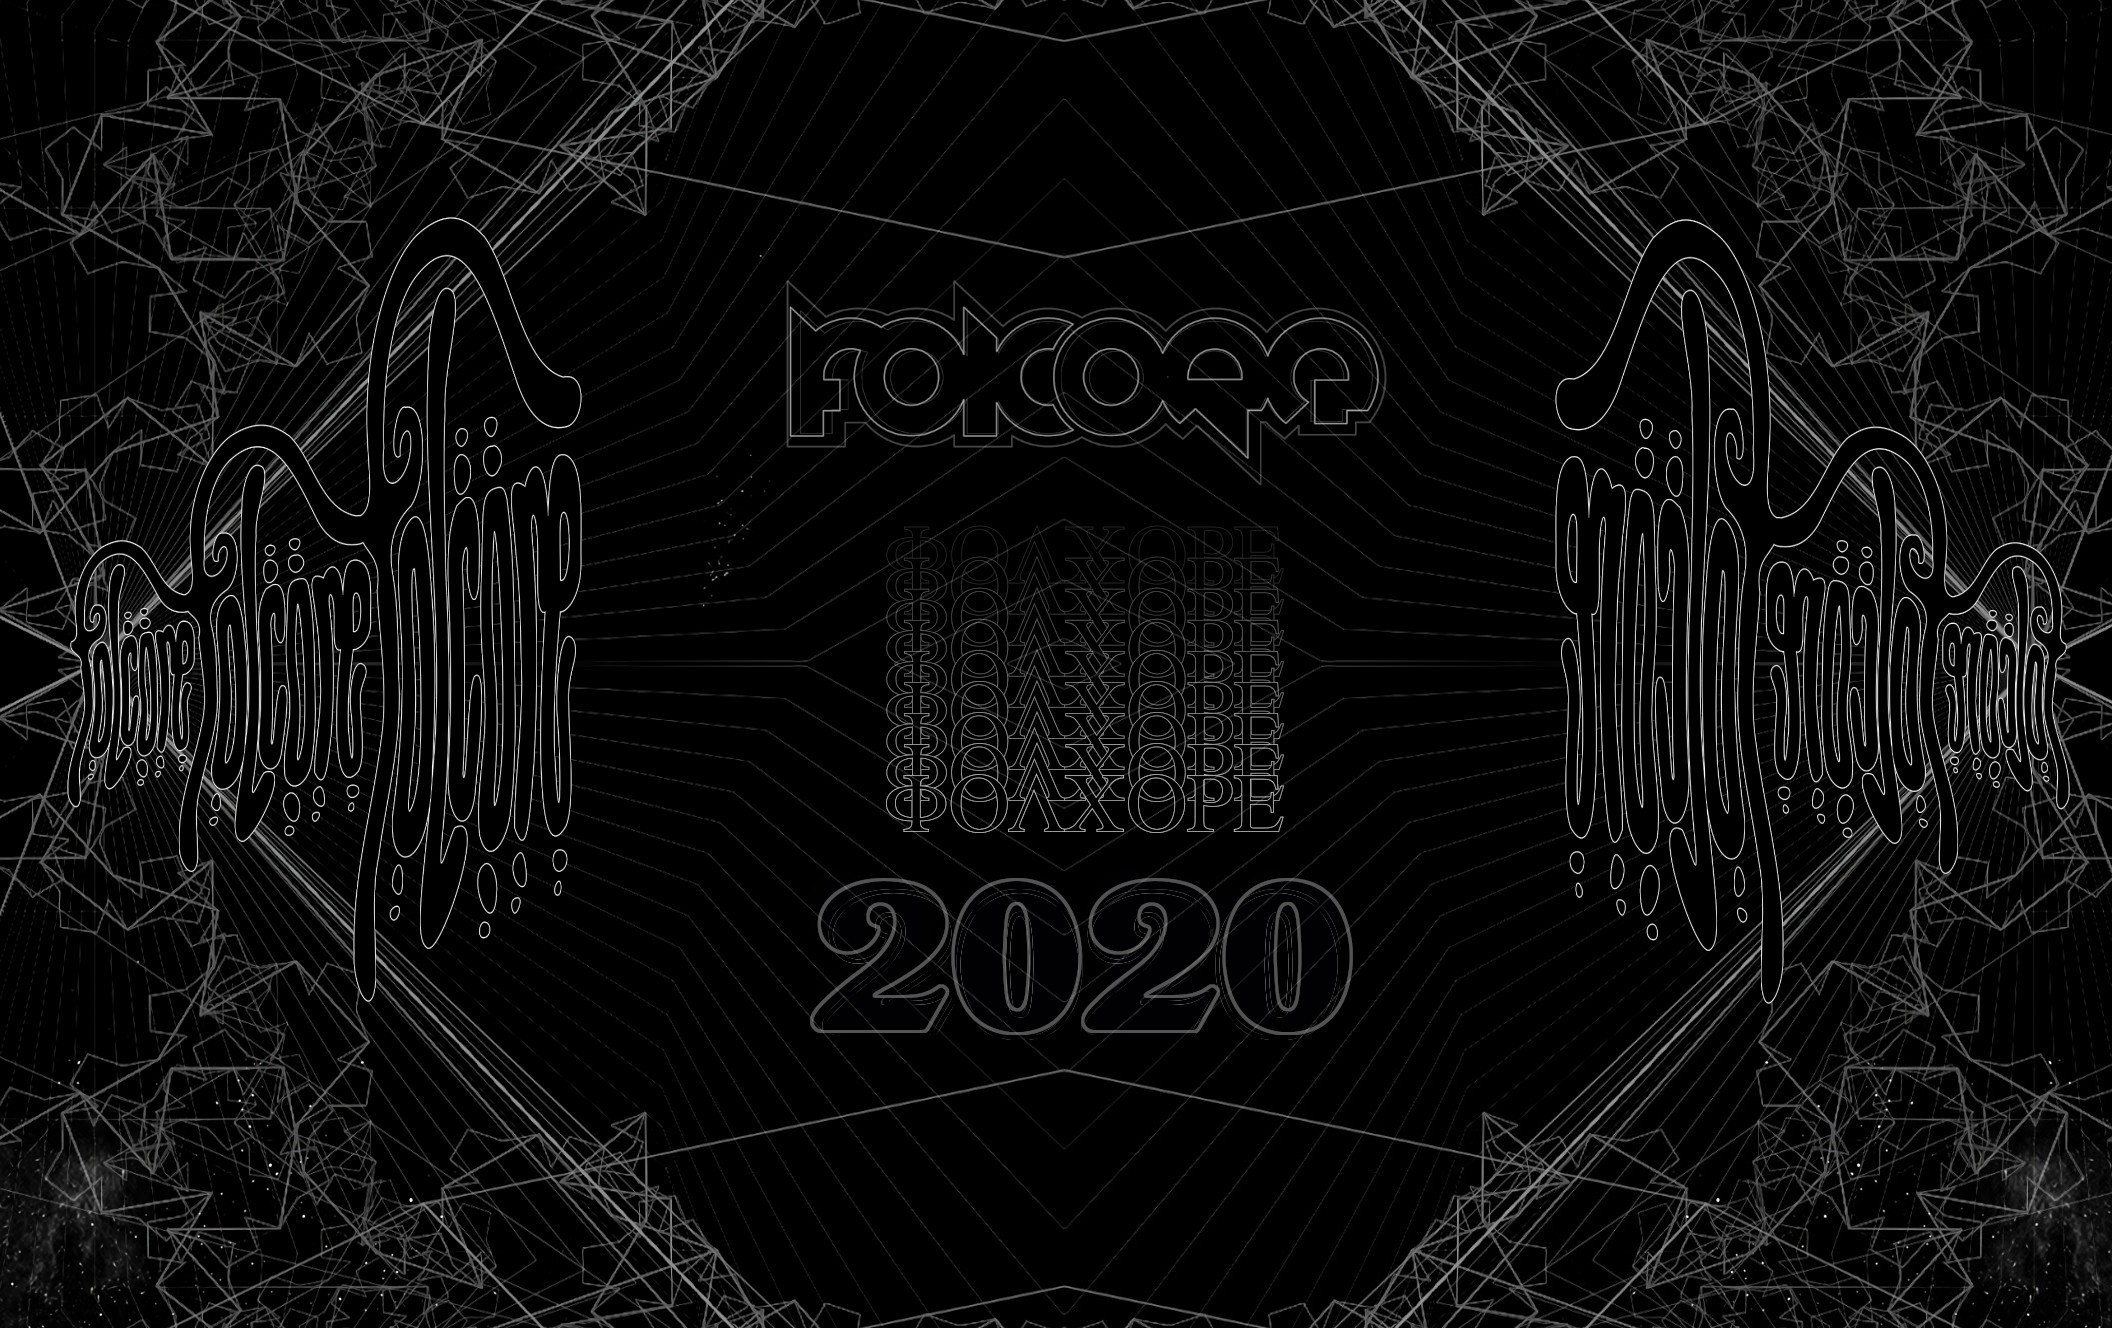 Folcore Records / Resumen 2020 Singles, minimix, playlists & mixtapes